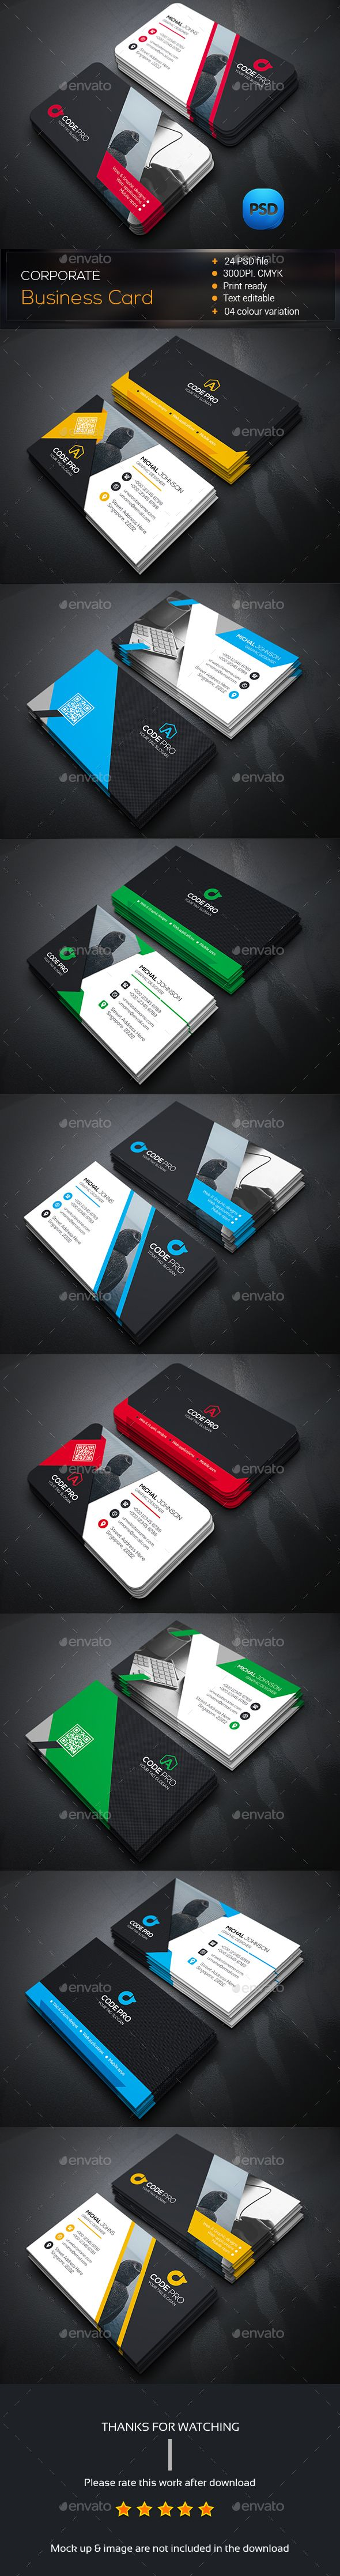 Personal business card bundle photoshop psd pack print personal business card bundle photoshop psd pack print available here https reheart Images